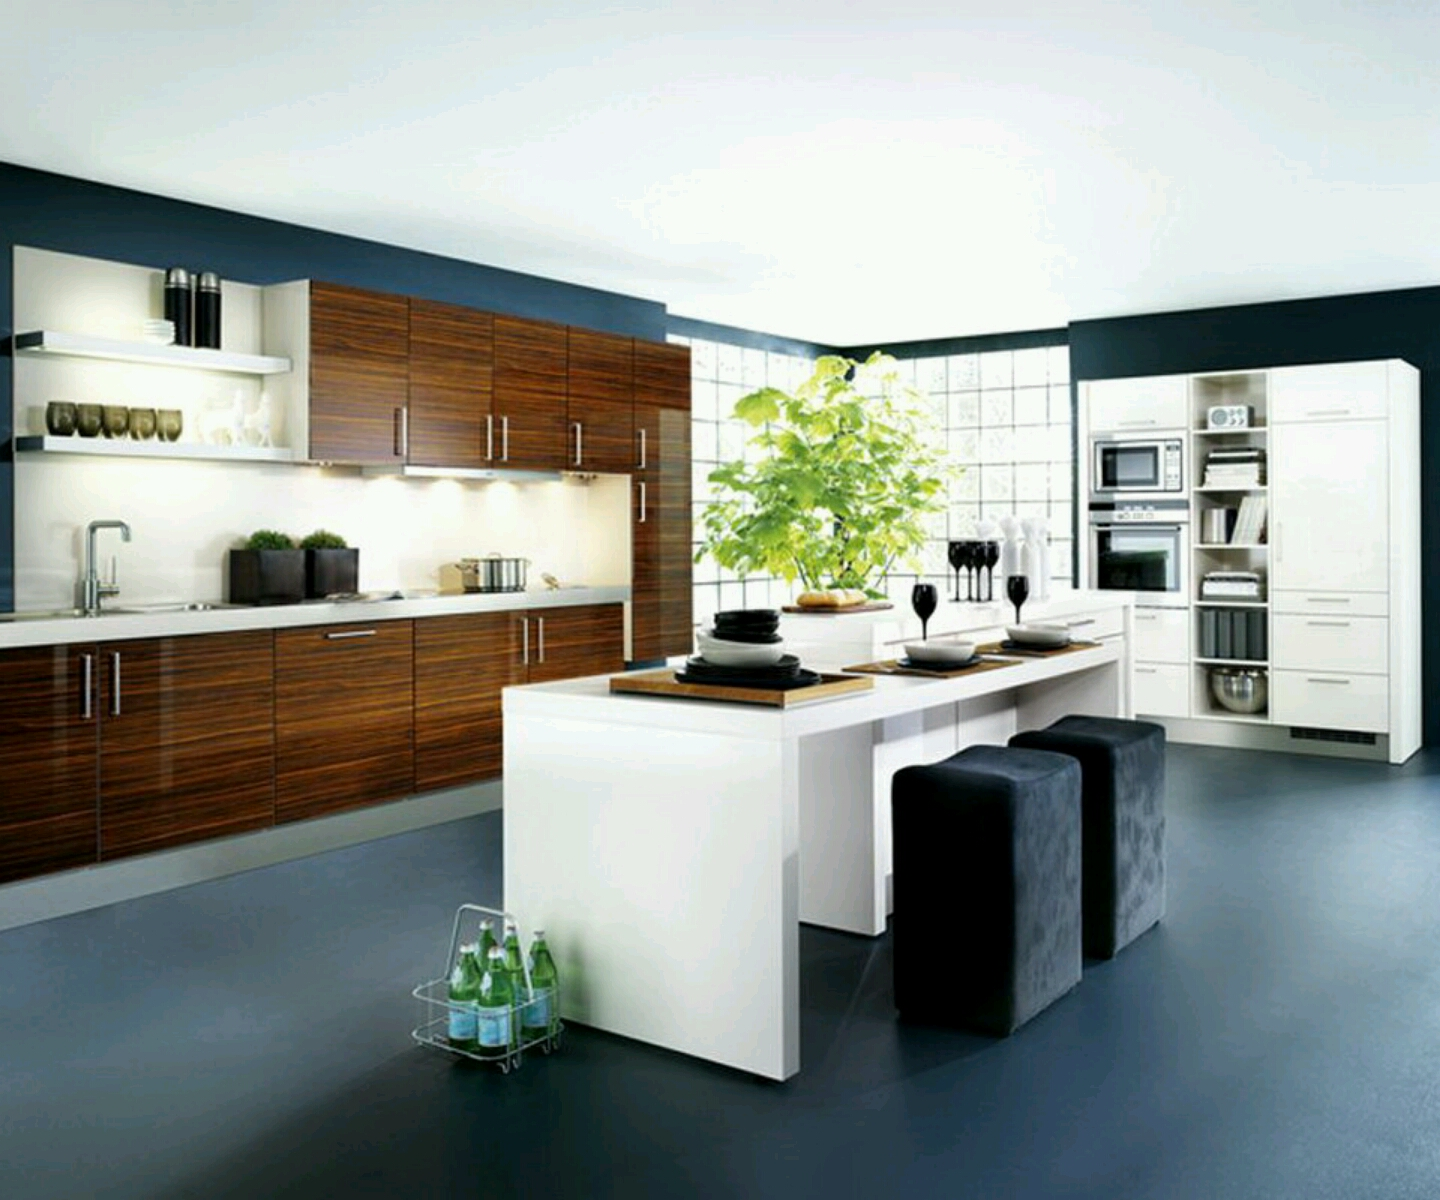 New home designs latest kitchen cabinets designs modern for Modern kitchen layout